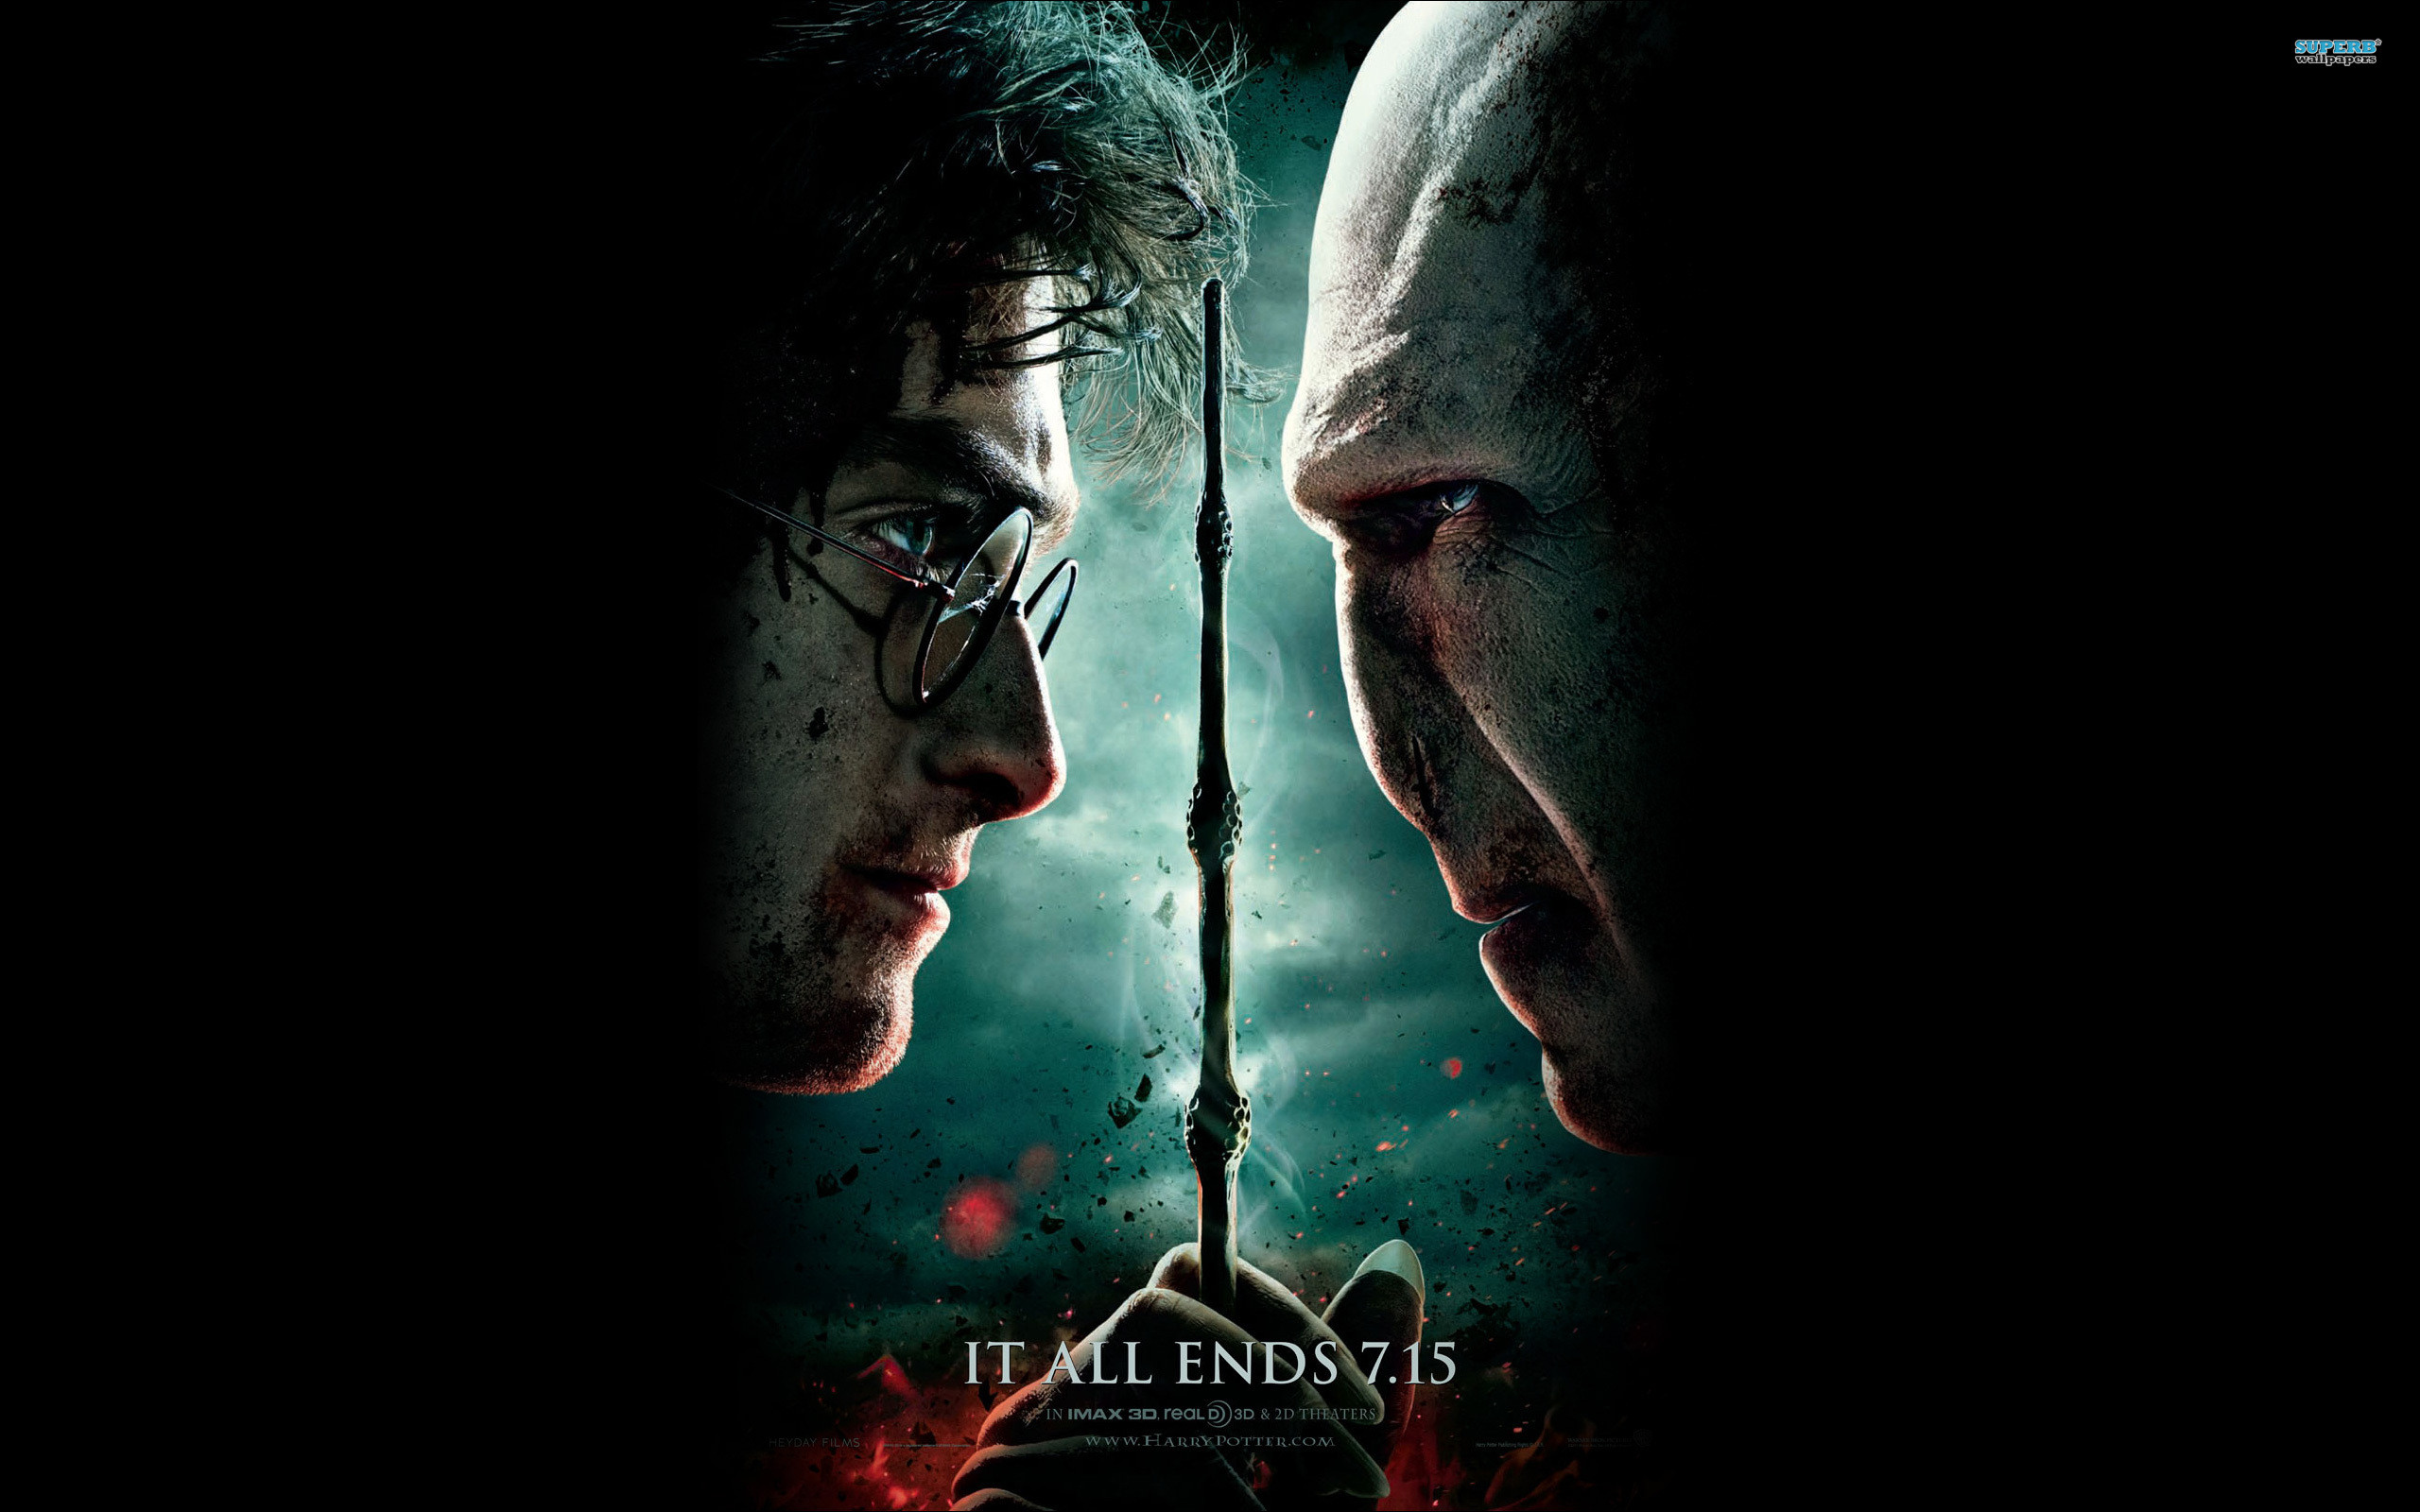 Harry Potter and the Deathly Hallows wallpaper – Movie wallpapers .